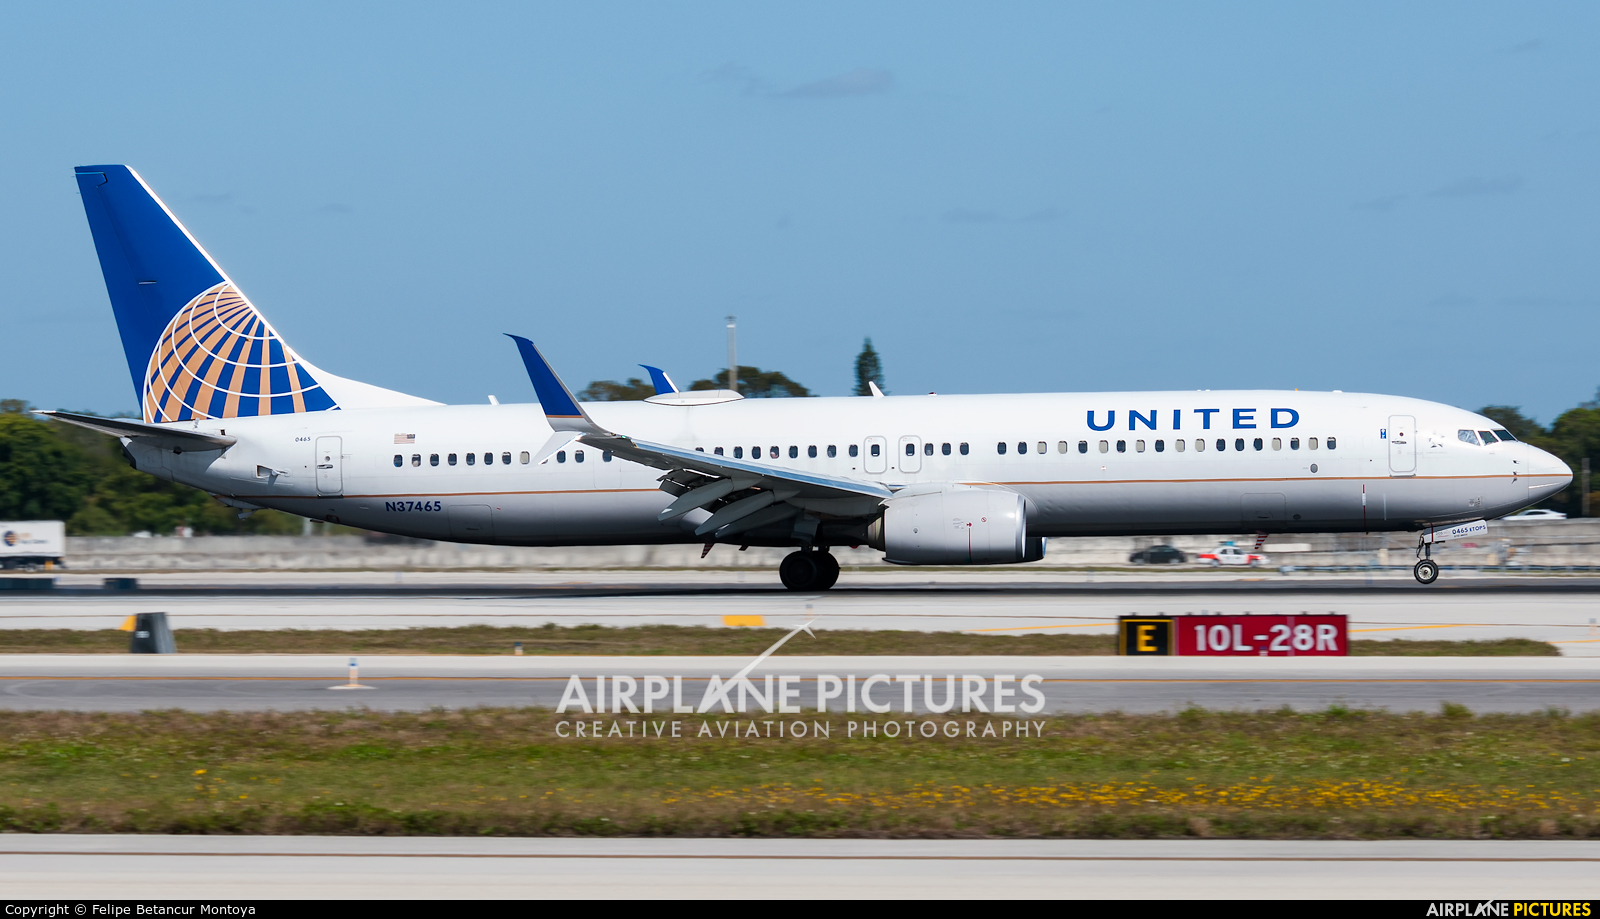 United Airlines N37465 aircraft at Fort Lauderdale - Hollywood Intl